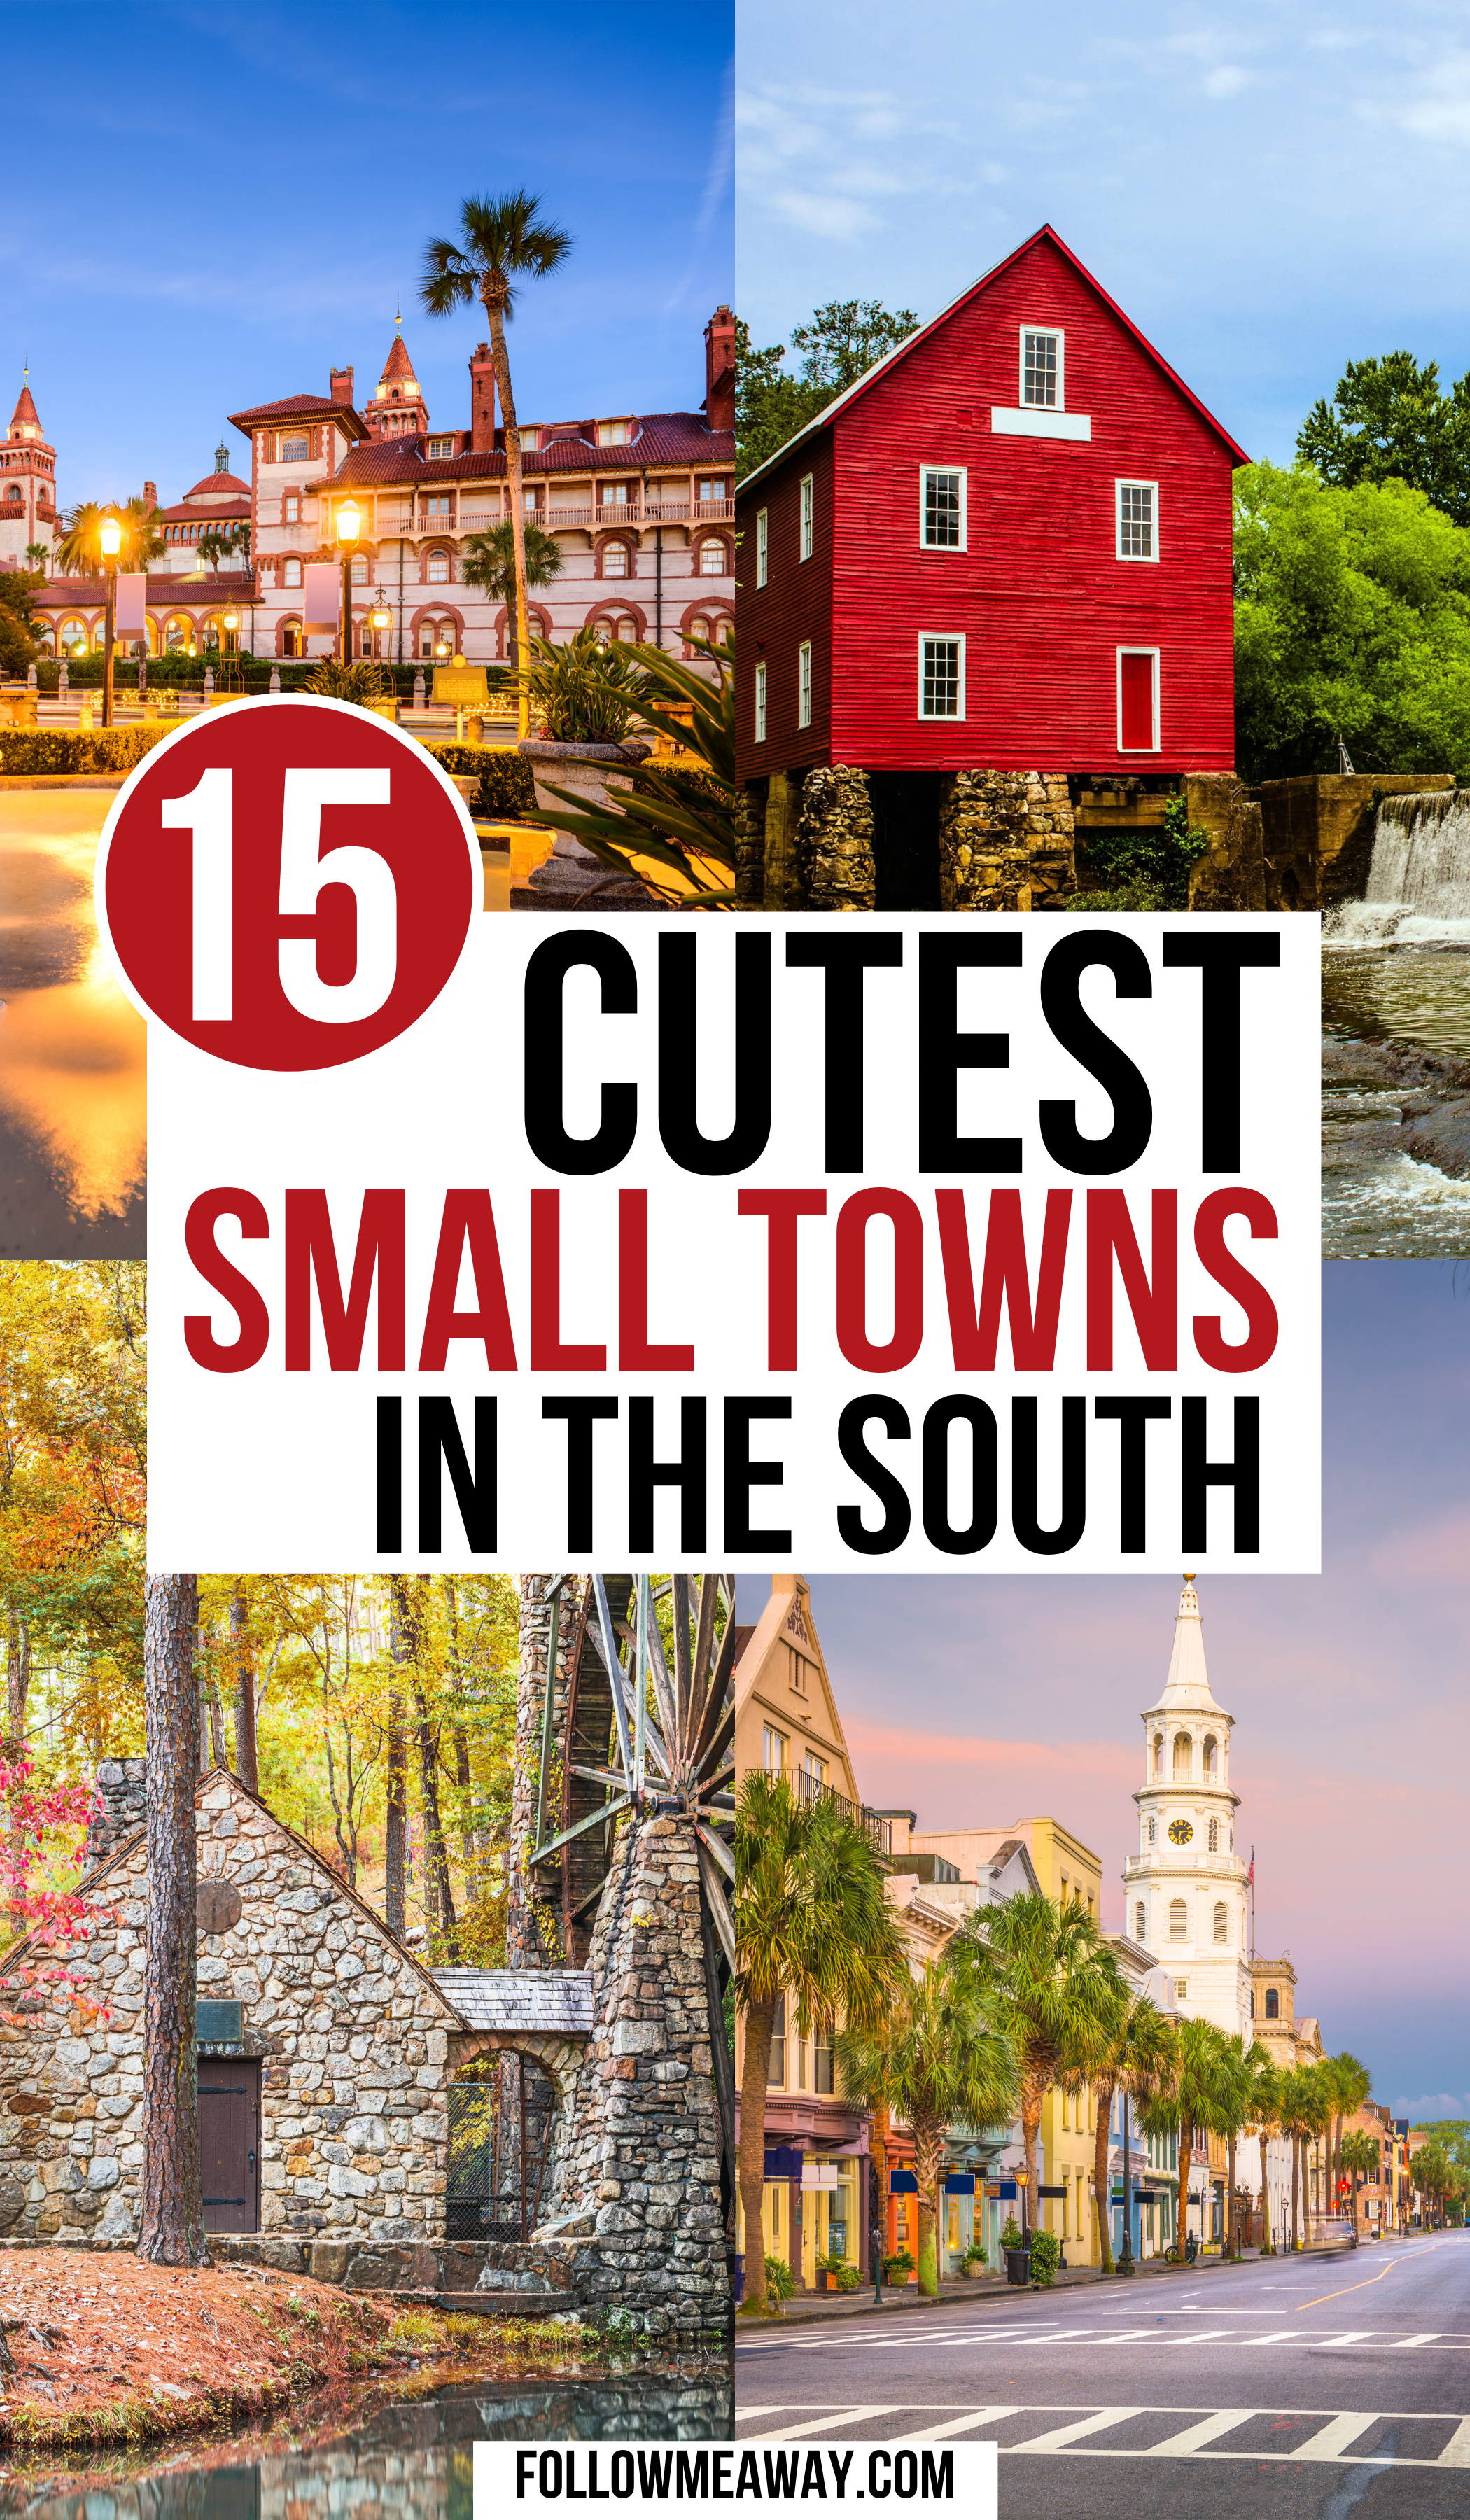 15 Cutest Small Towns in The South, USA | cutest small towns in the south | small towns in the south | beautiful places in the us small towns | southern small town | best southern small towns | southern small town getaways | travel in the southern united states | travel in the south usa | weekend trips in the south | best places to visit in the south usa | best towns in the south | #smalltownsinthesouth #getawaysinthesouth